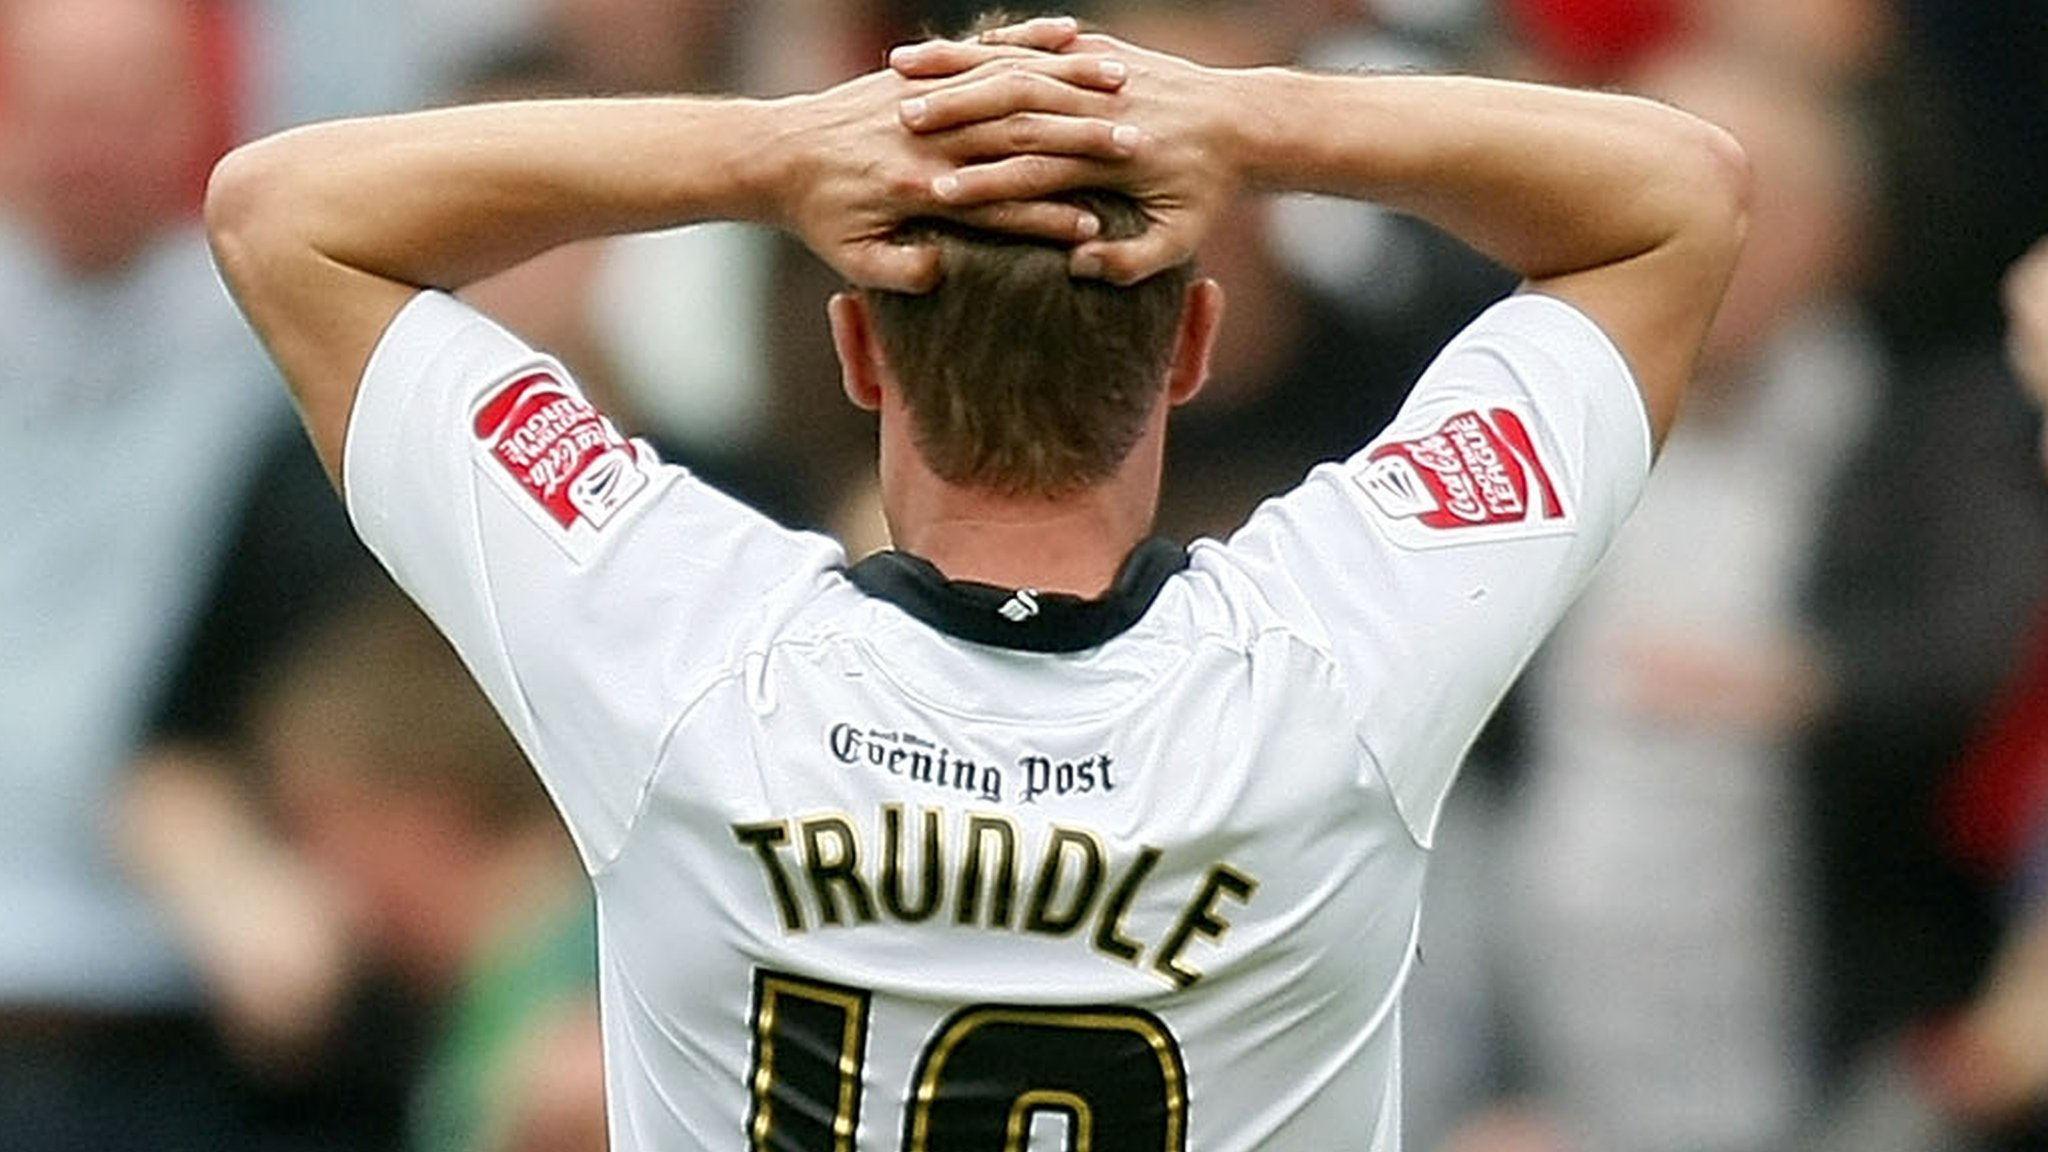 Lee Trundle: Former Swansea player scores outrageously cheeky penalty